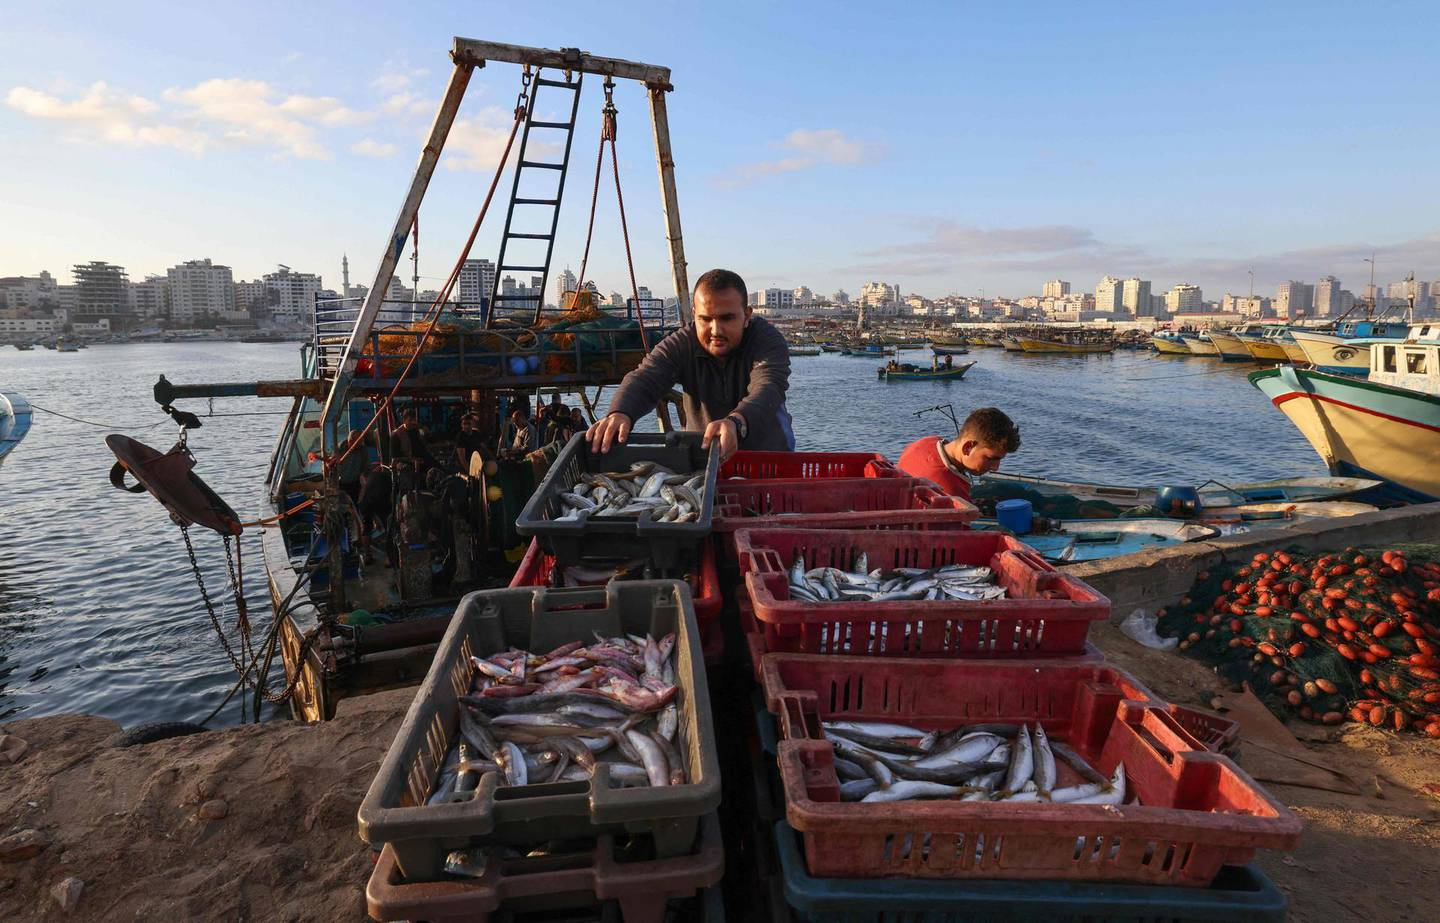 Palestinian fishermen unload their catch at Gaza City's main fishing port, on May 24, 2021, after Israeli security forces allowed a limited number of vessels to return to sea following a ceasefire in the recent conflict.  / AFP / Emmanuel DUNAND